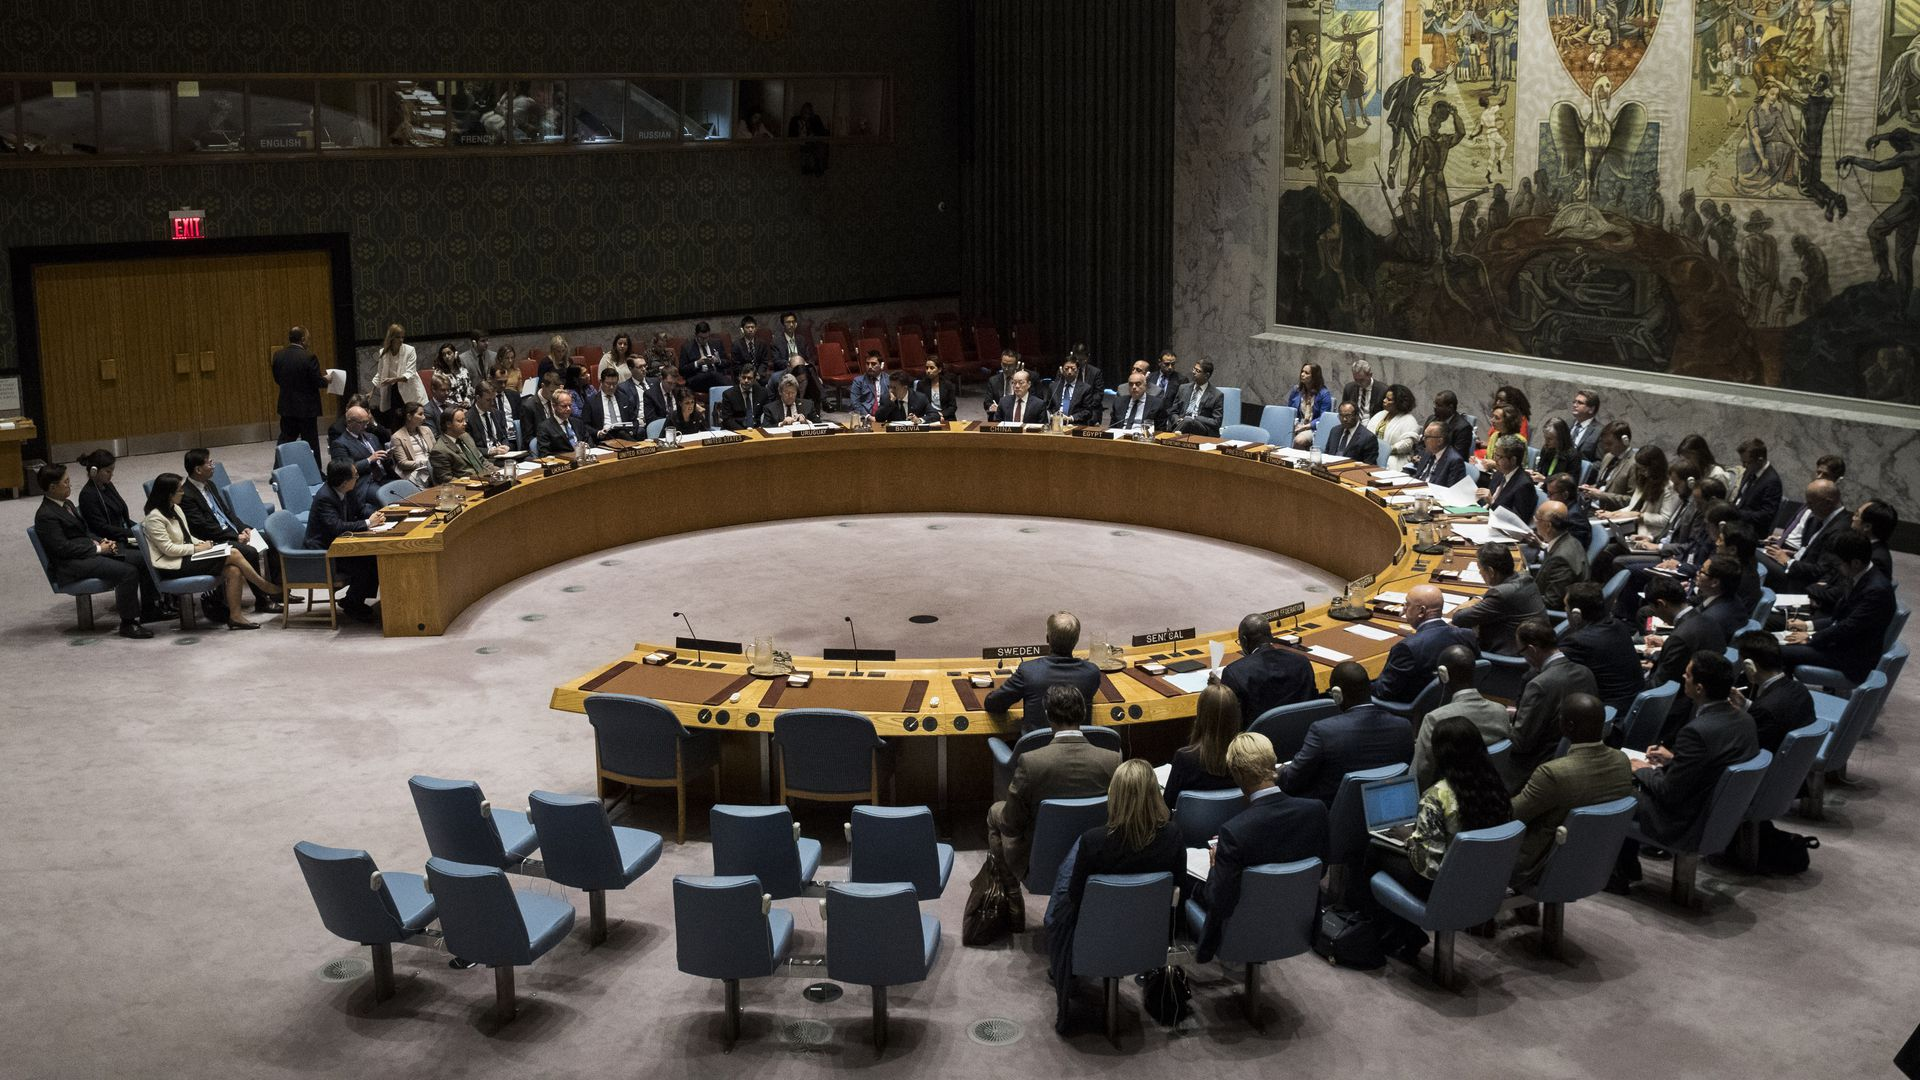 United Nations Security Council: Photo by Drew Angerer/Getty Images